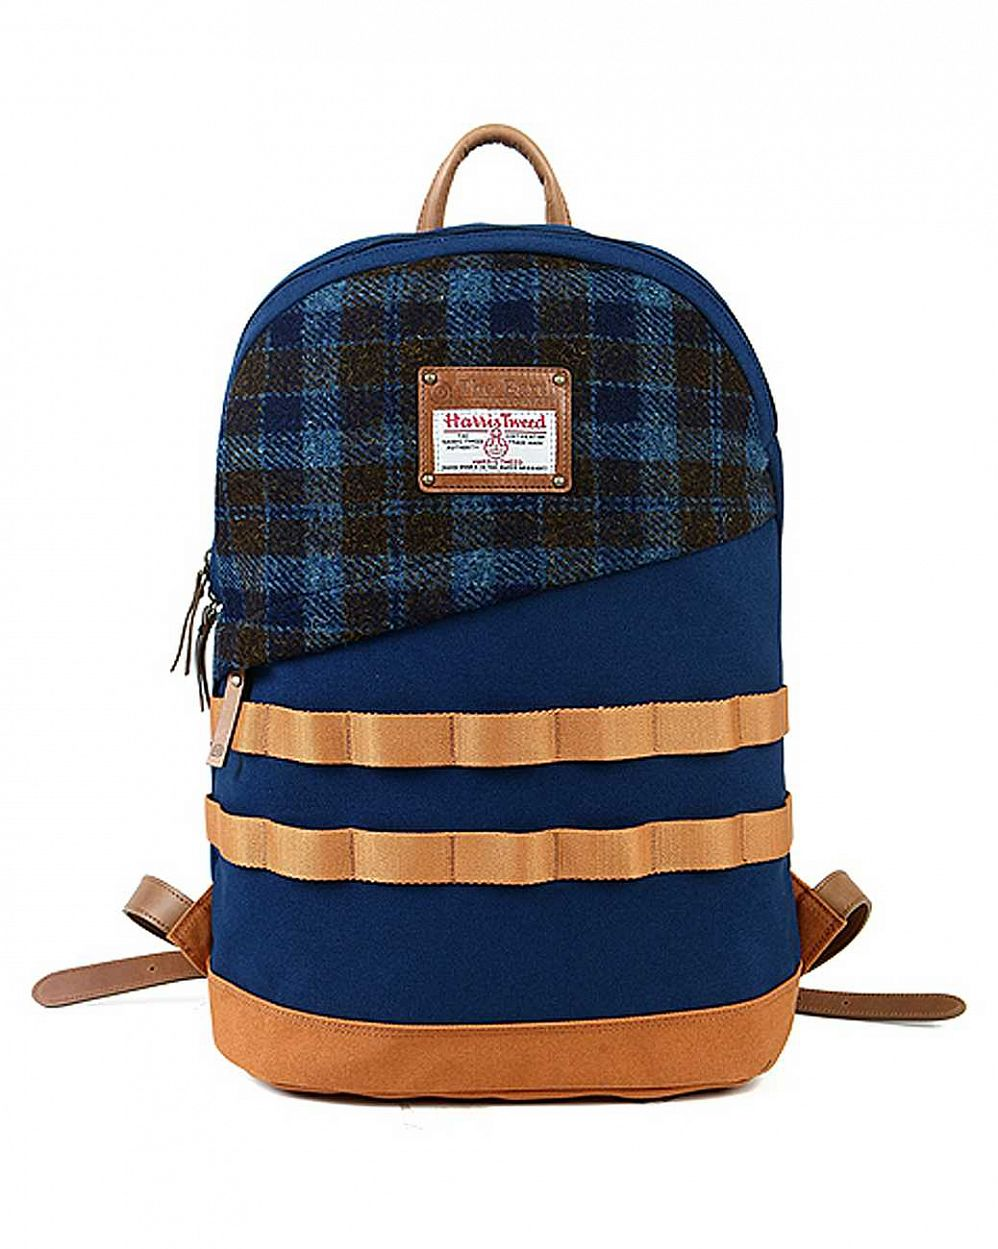 купить Рюкзак The earth Company Harris Tweed (England) Daypack blue в Москве